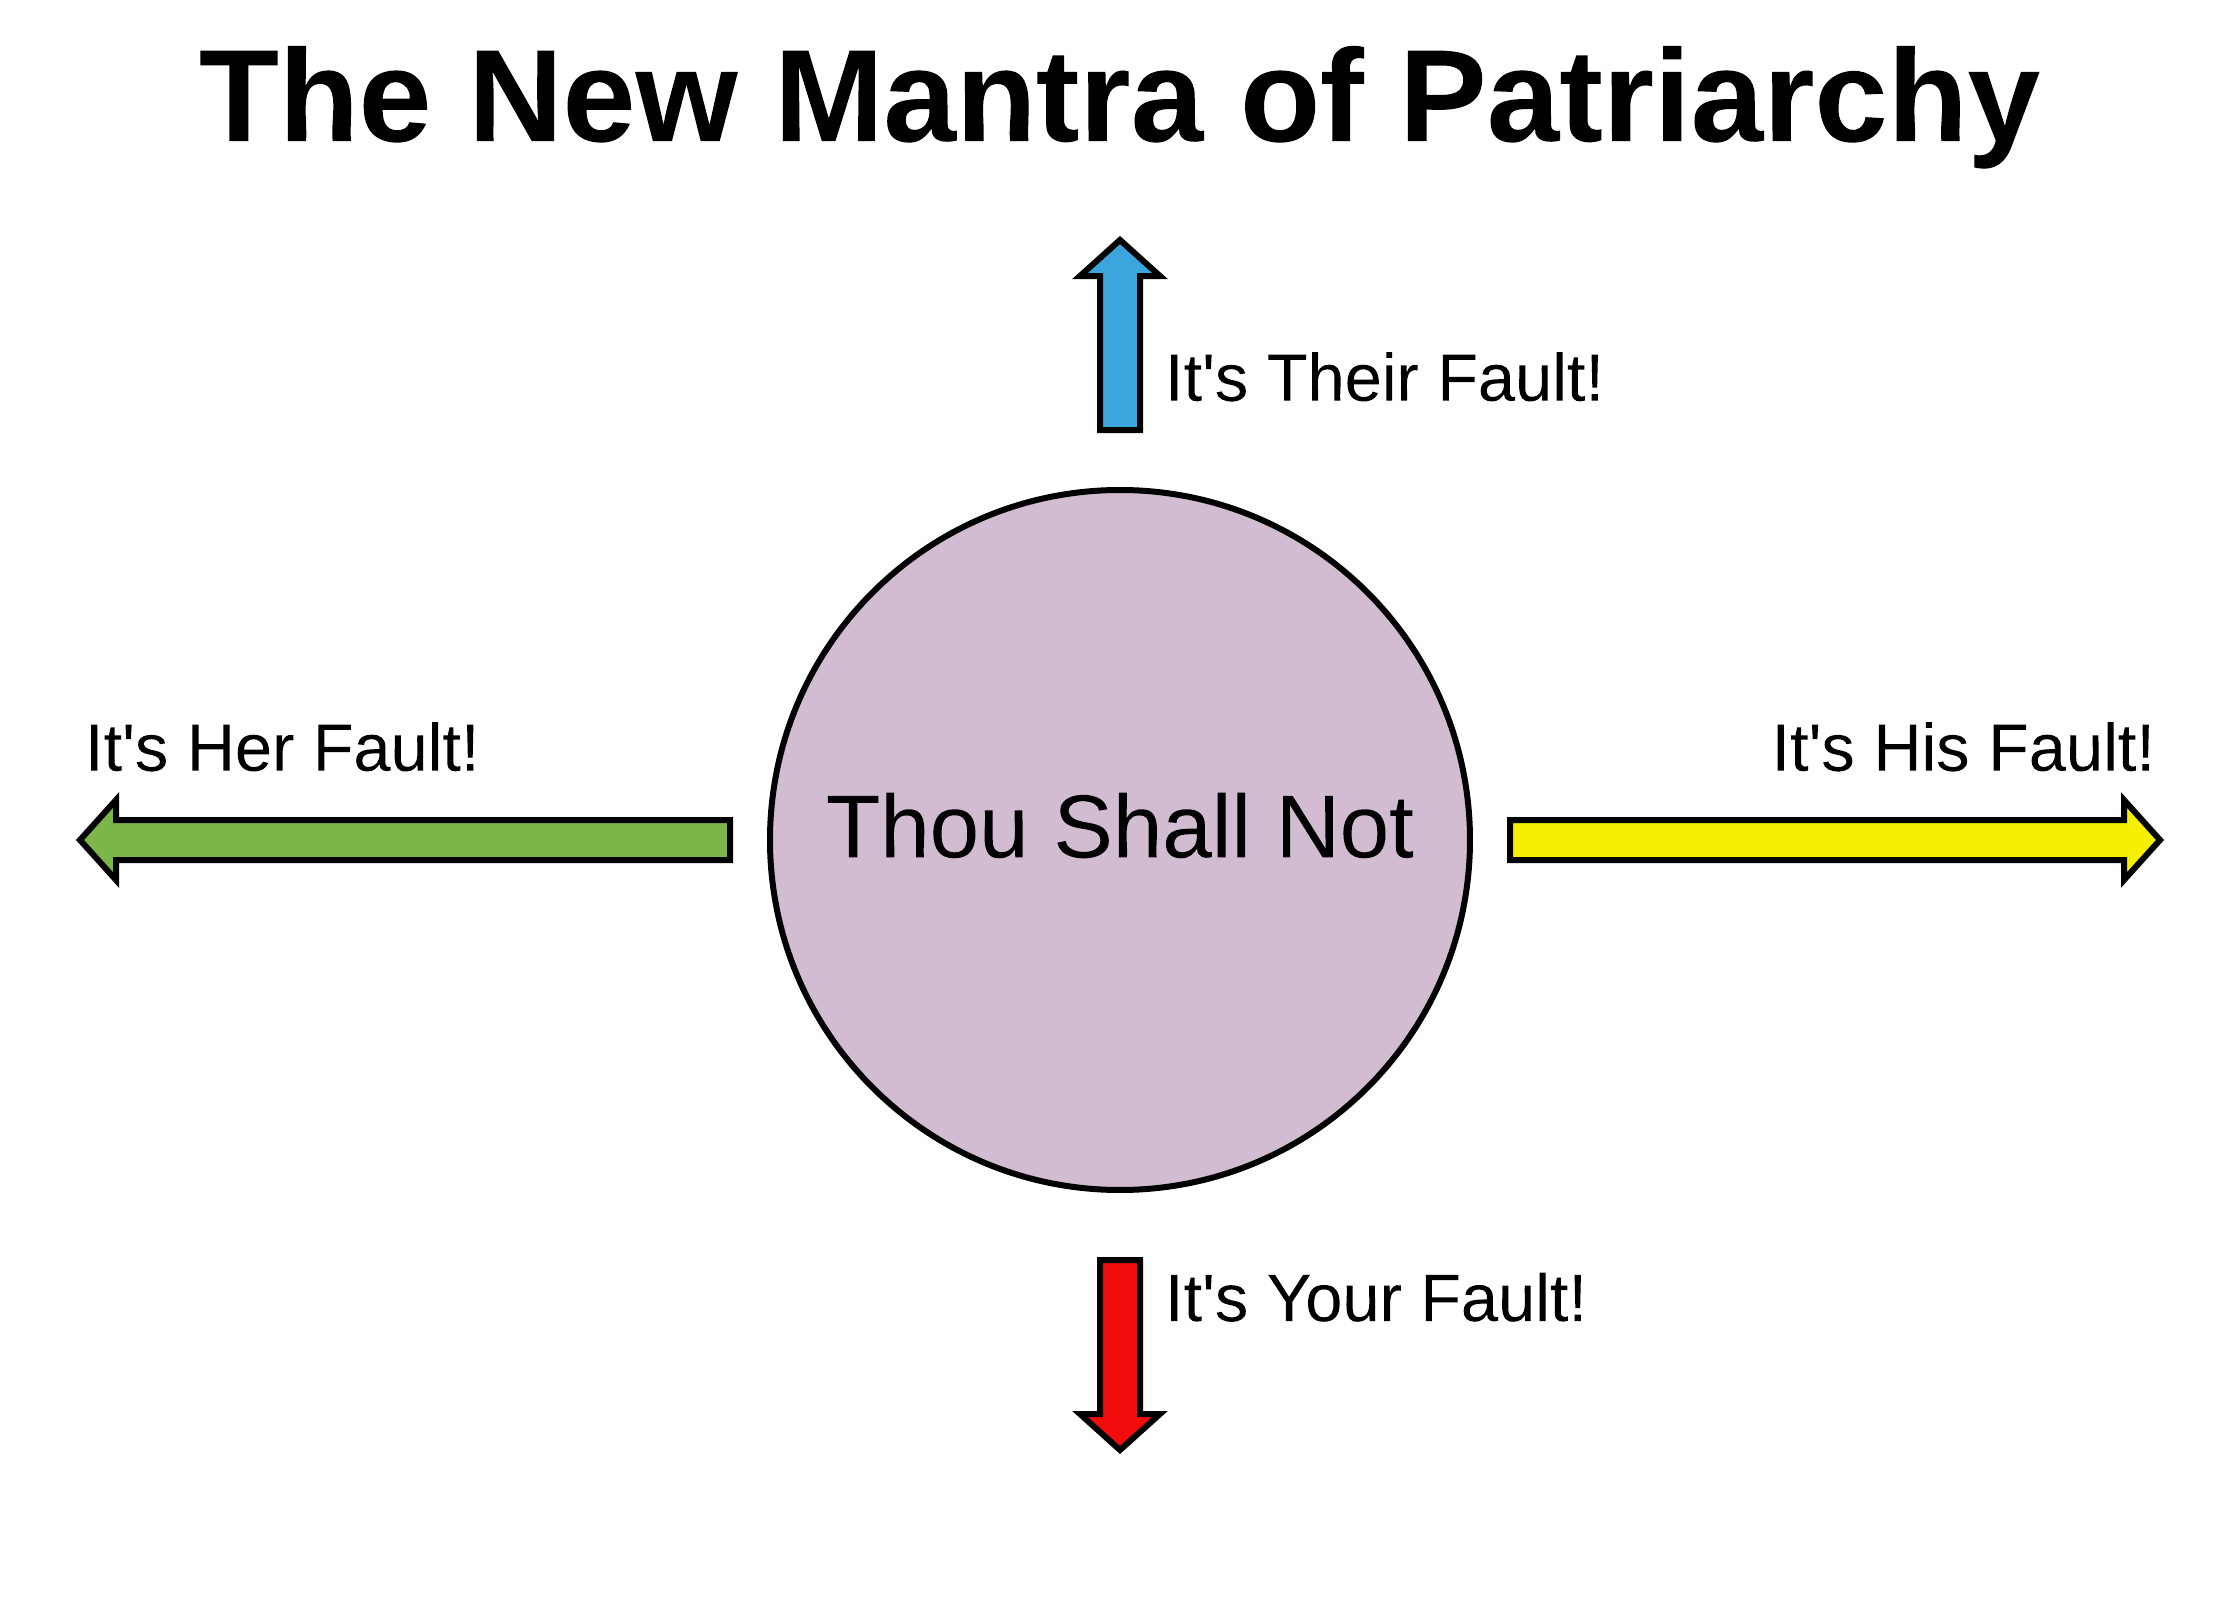 Blog 17 - The New Mantra Of Patriarchy